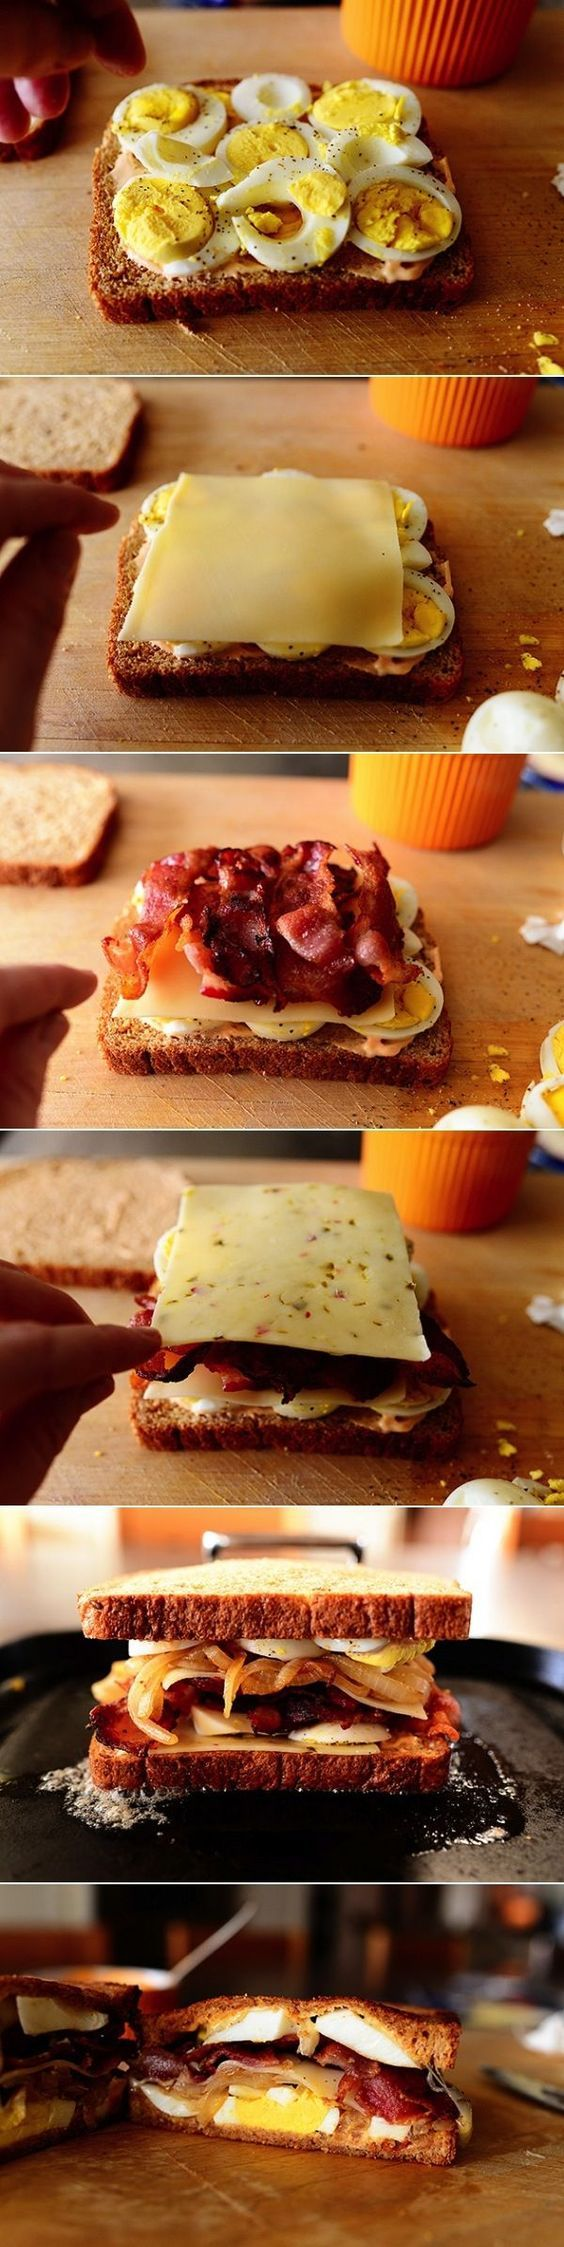 17 best images about hey i could make that on pinterest for Sandwiches on the dance floor